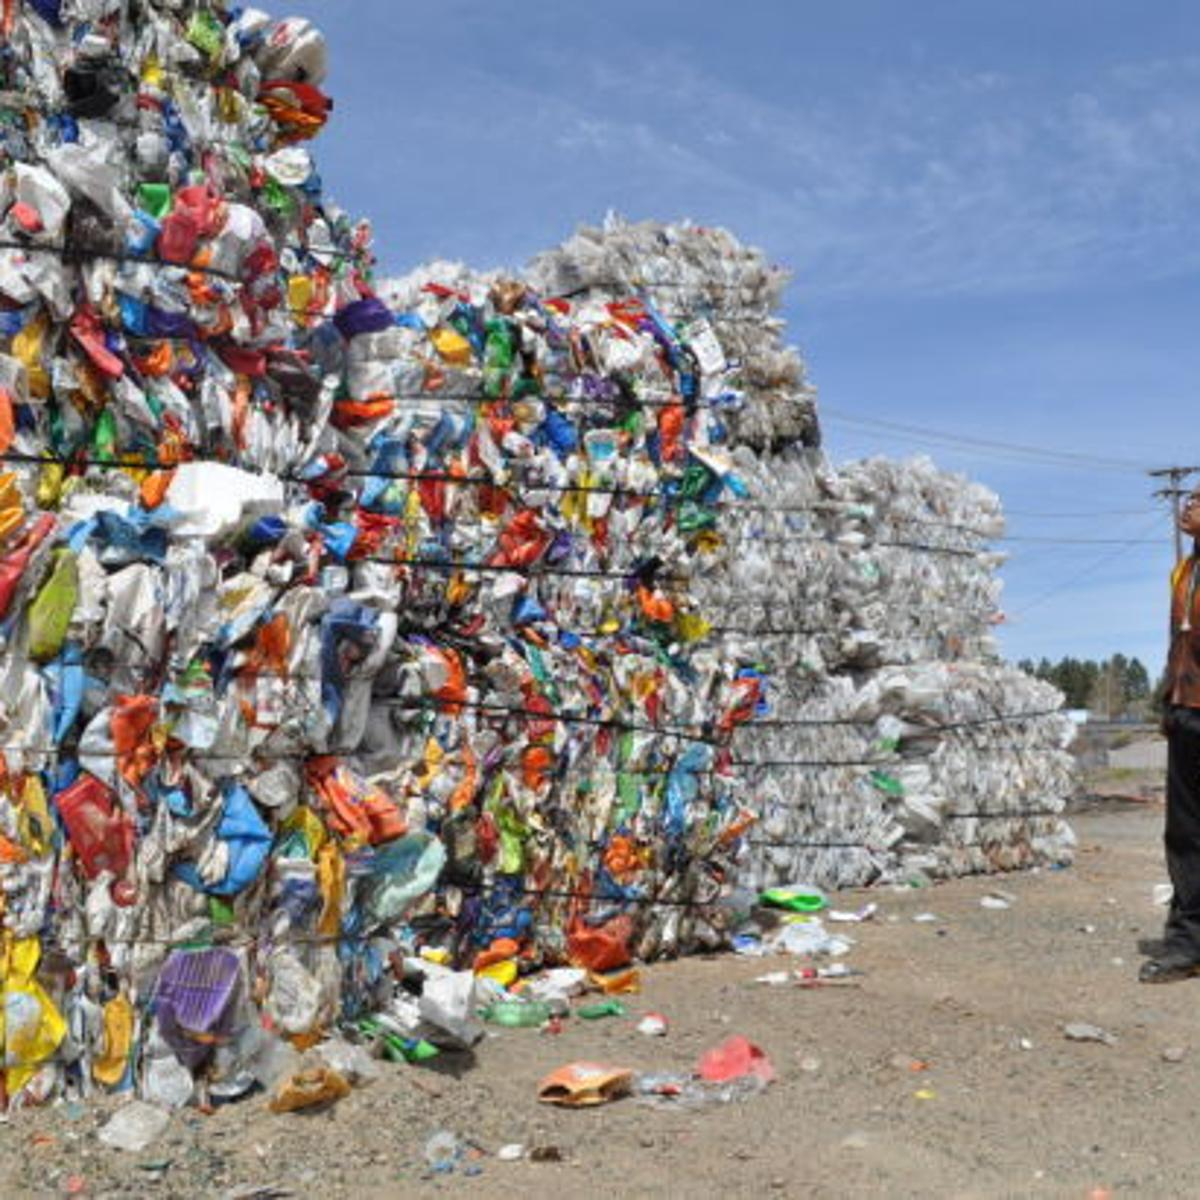 China crackdown undermines Flagstaff plastic recycling | Local